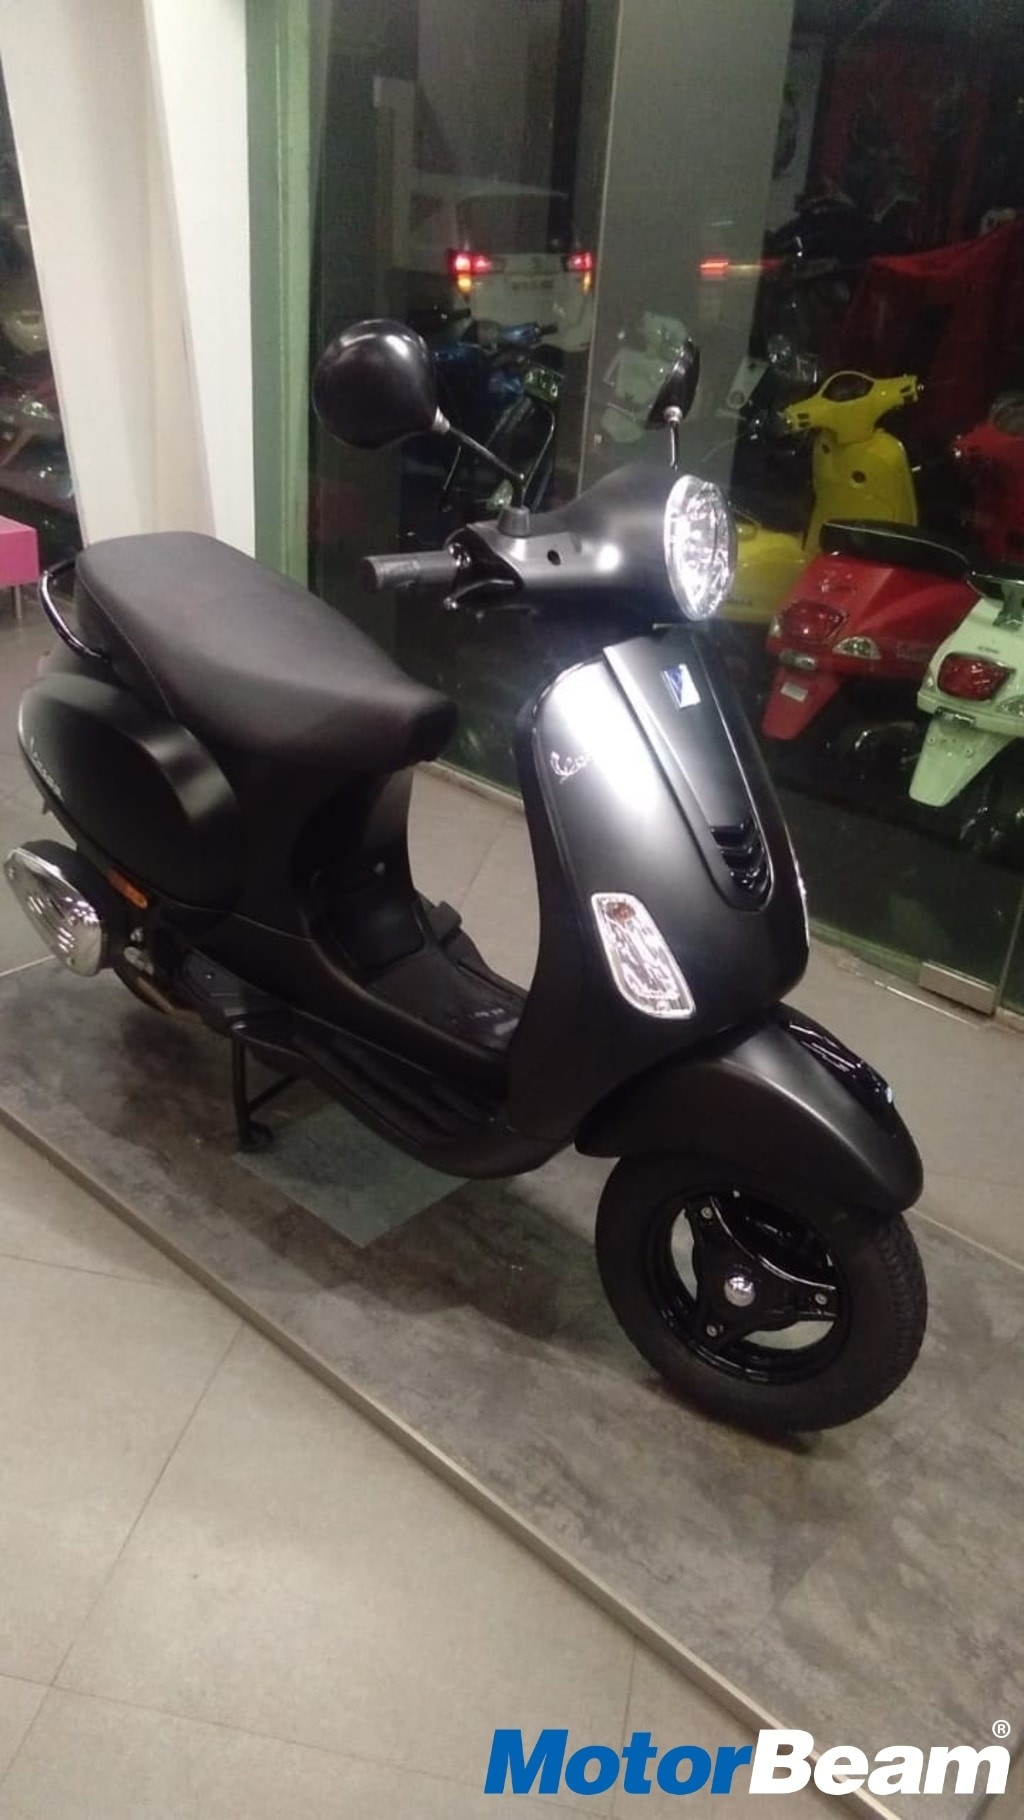 Vespa Notte 125 Price Is Rs  70,285/-, Launched In India